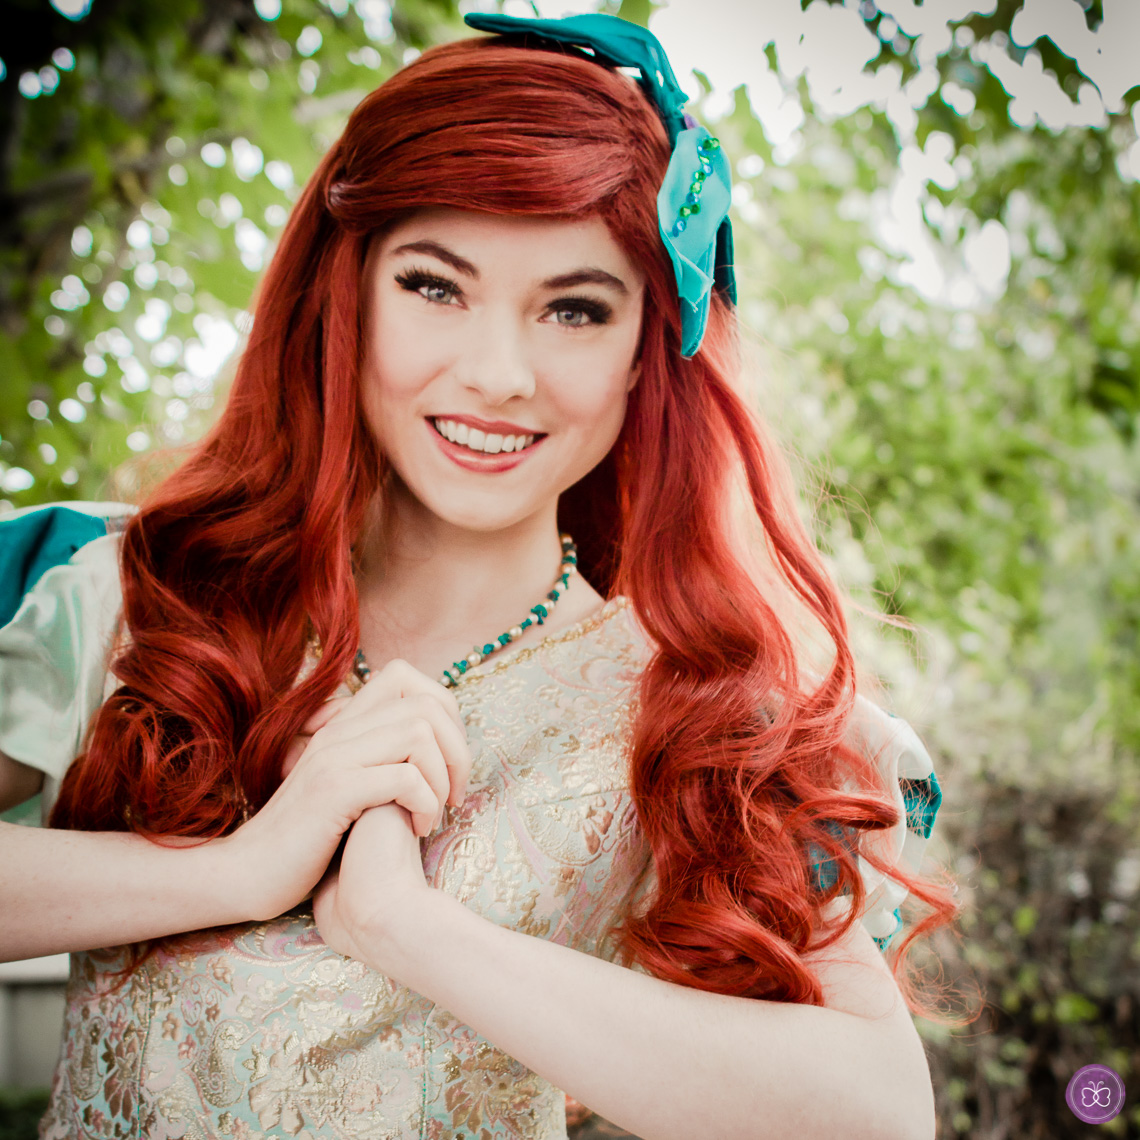 Princess Ariel party character Los Angeles.